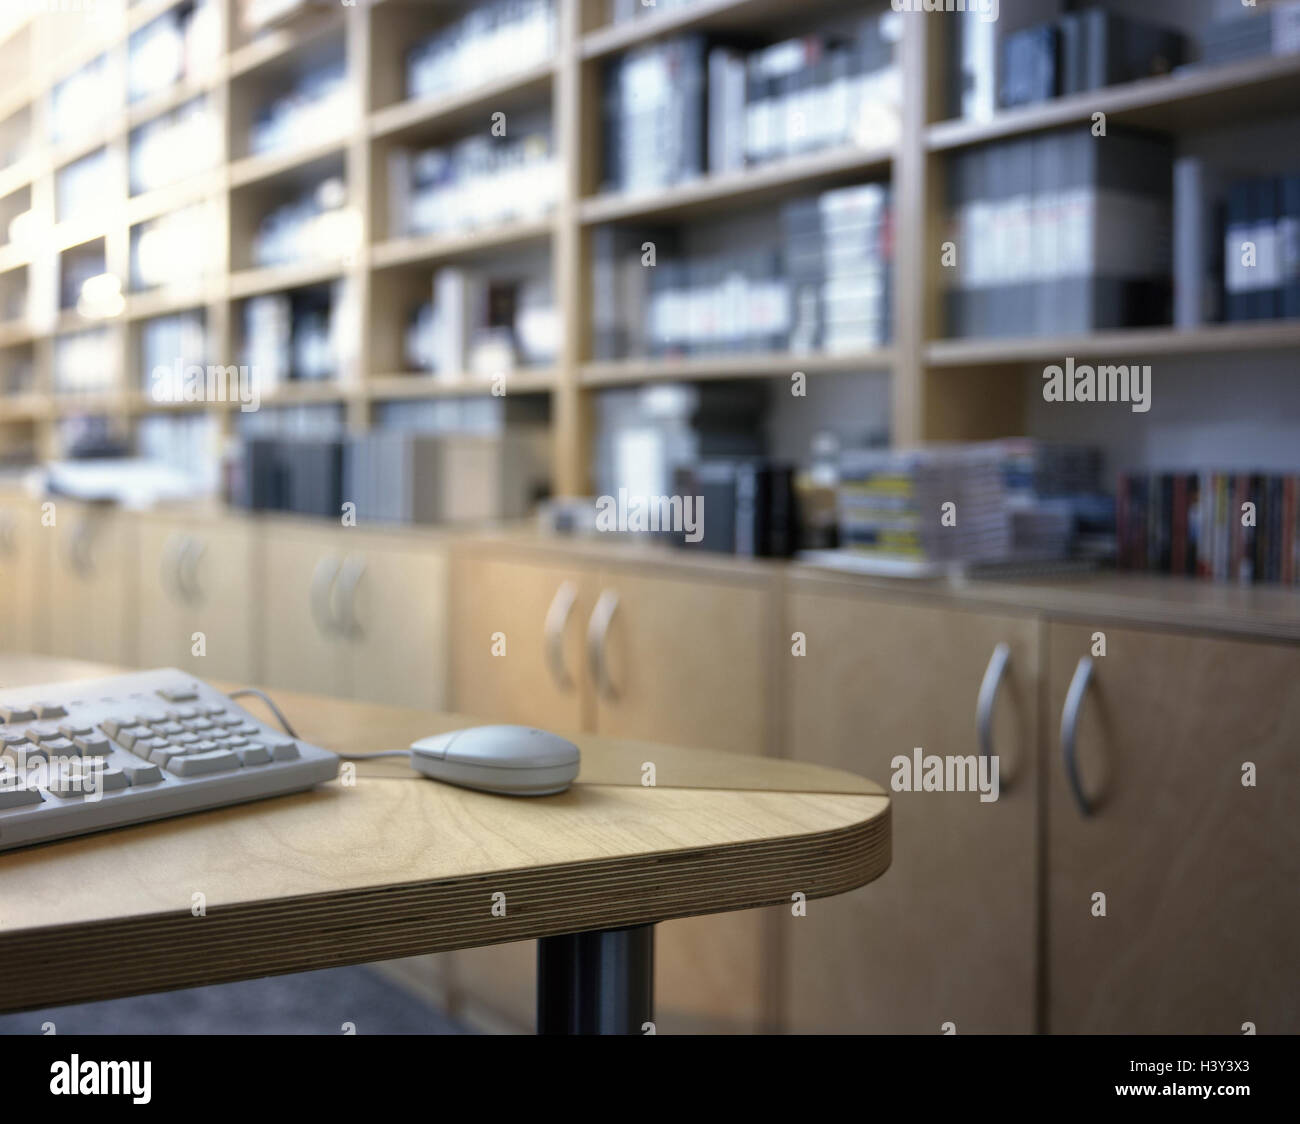 office wall shelving. Office, Wall-to-wall Shelving, Desk, Detail, Computer Keyboard, Mouse, Interior Arrangement, Wall Unit, Shelves, Books, Folders, CD\u0027s, Reference Office Shelving N